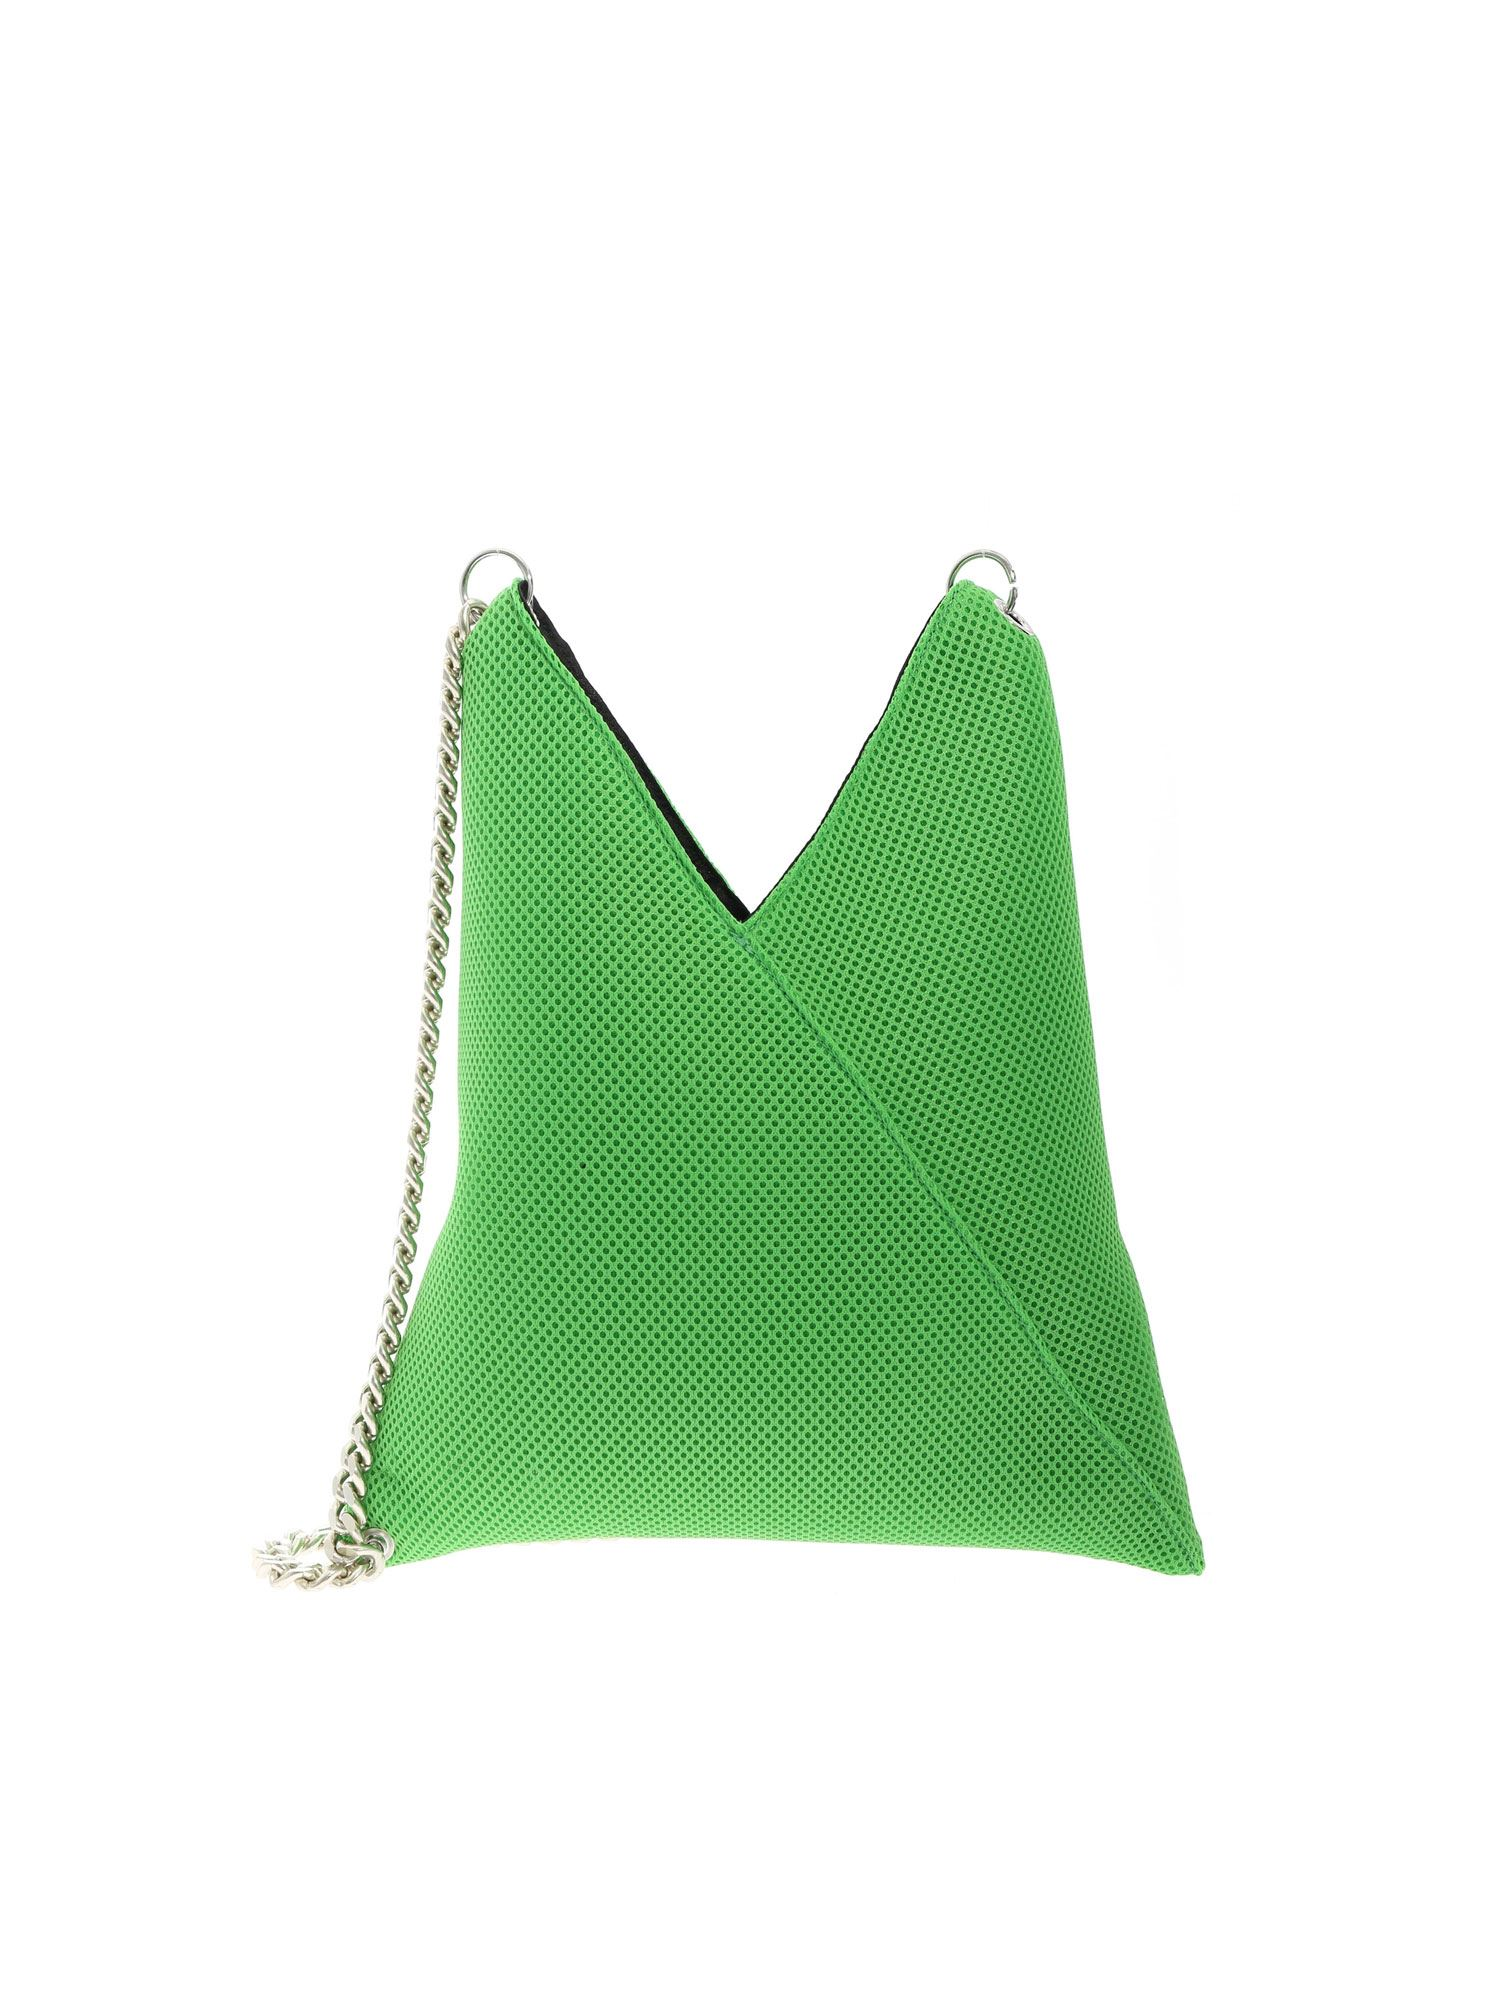 Mm6 Maison Margiela JAPANESE SHOULDER BAG IN GREEN